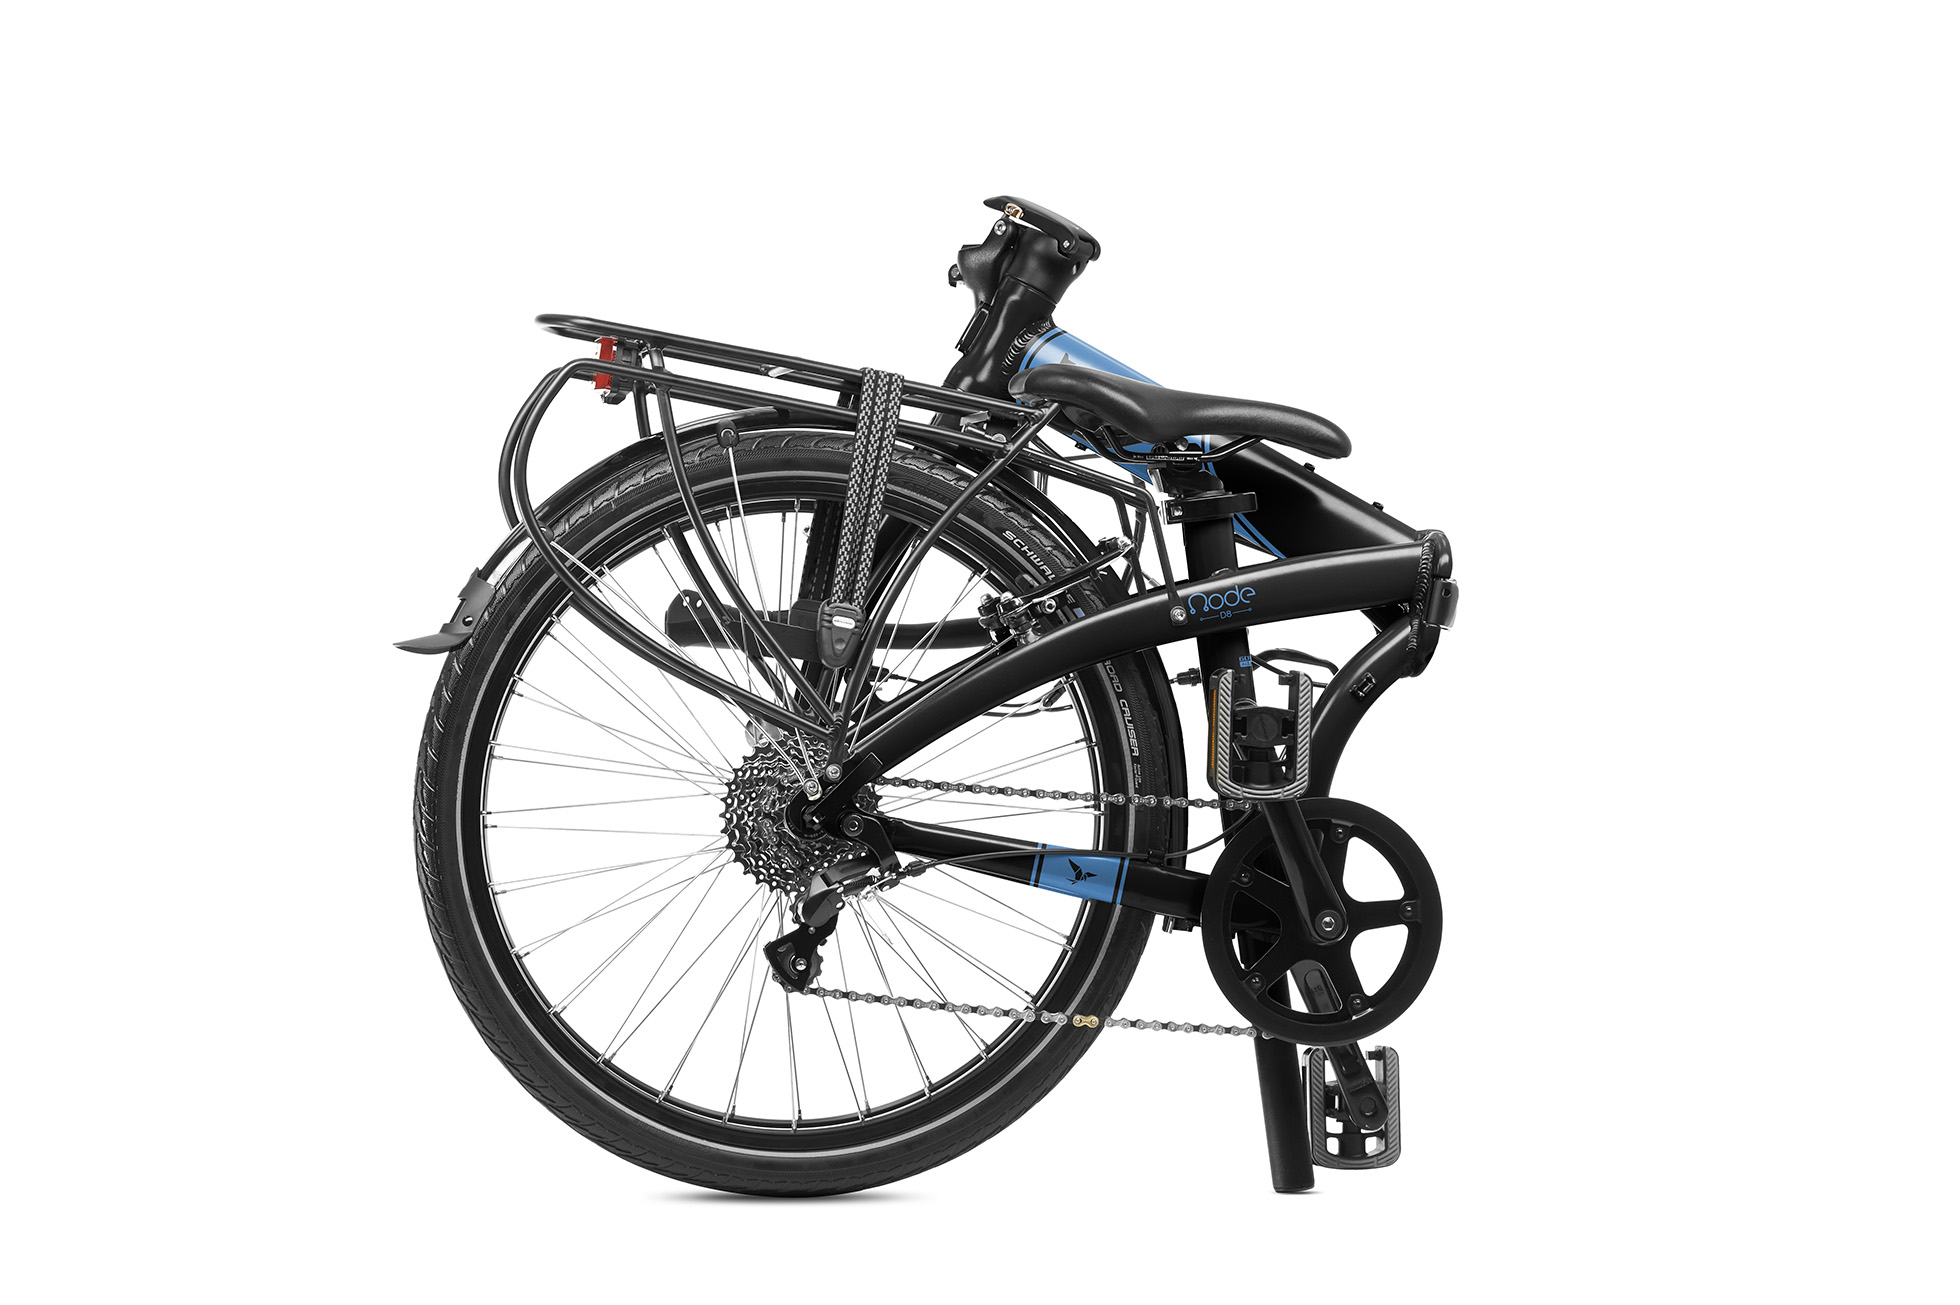 Tern 24 Quot Wheel Folding Bikes Cycle To Go